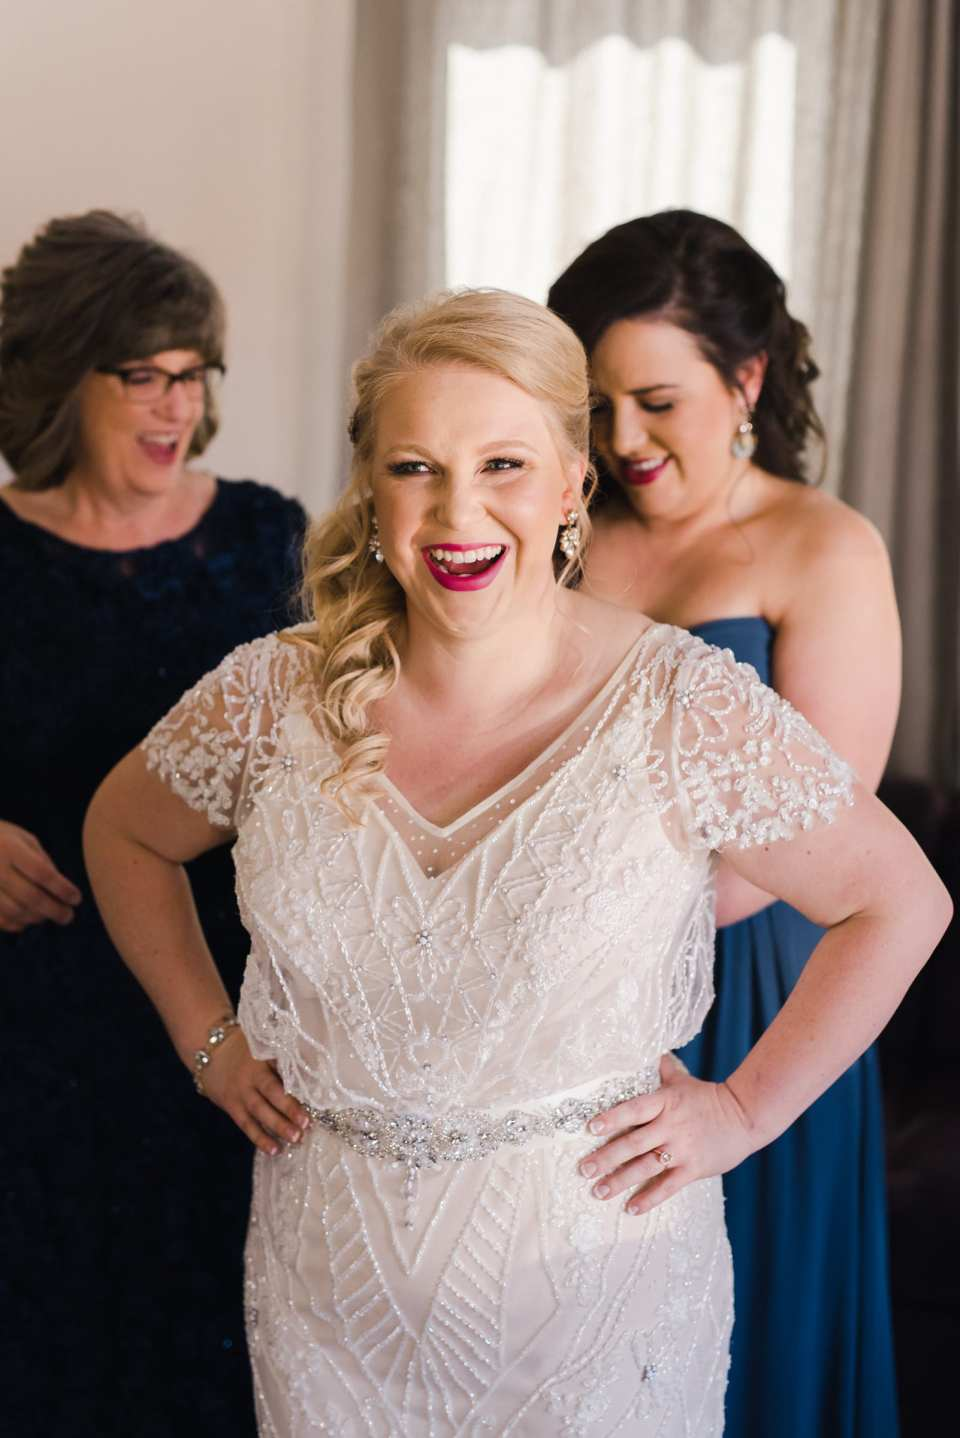 Bride in BHLDN wedding dress gets ready | Josie V Photography